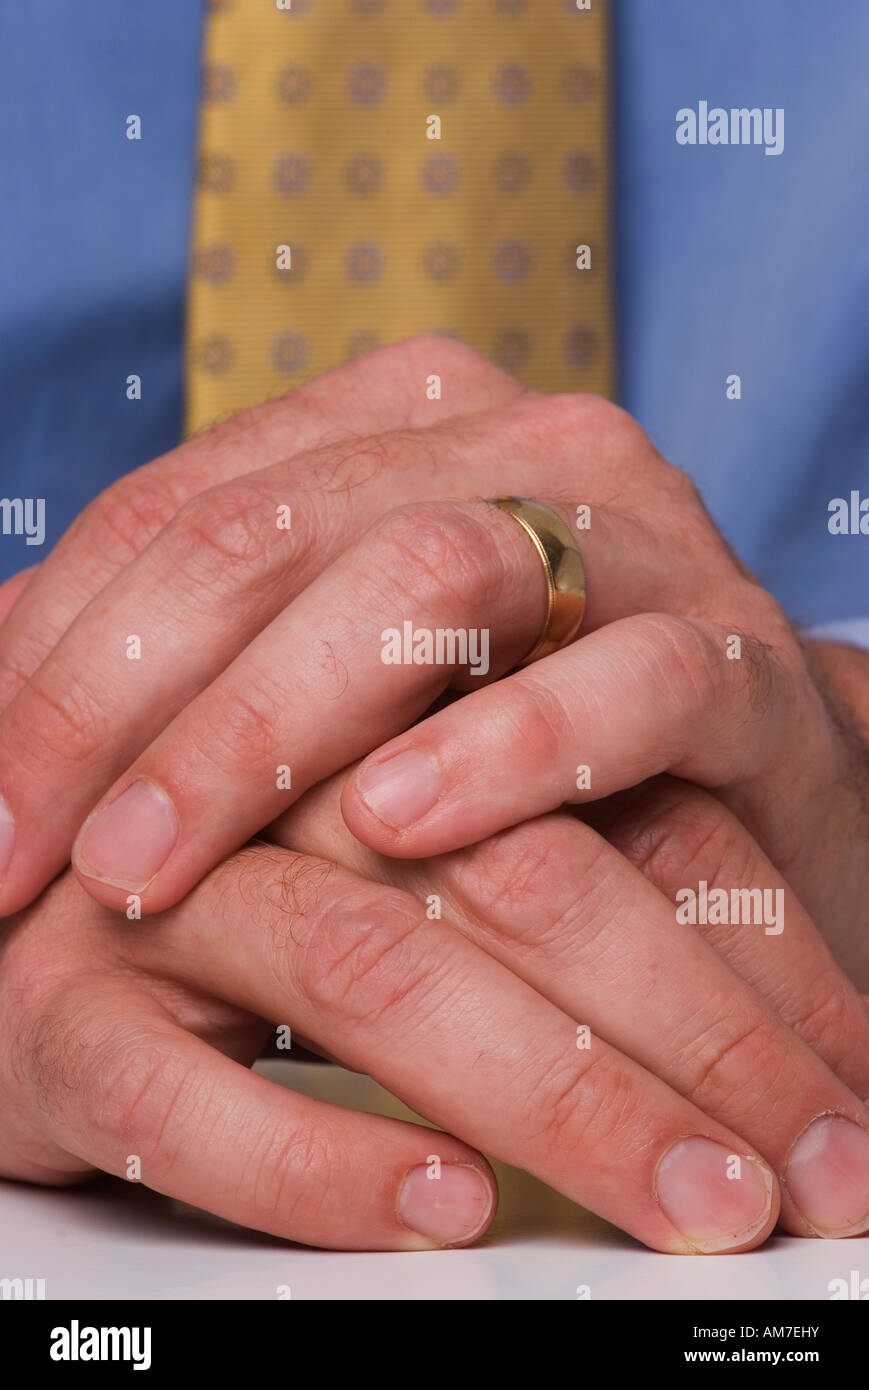 Wedding Ring On Male Finger Corporate Business Stock Photos ...